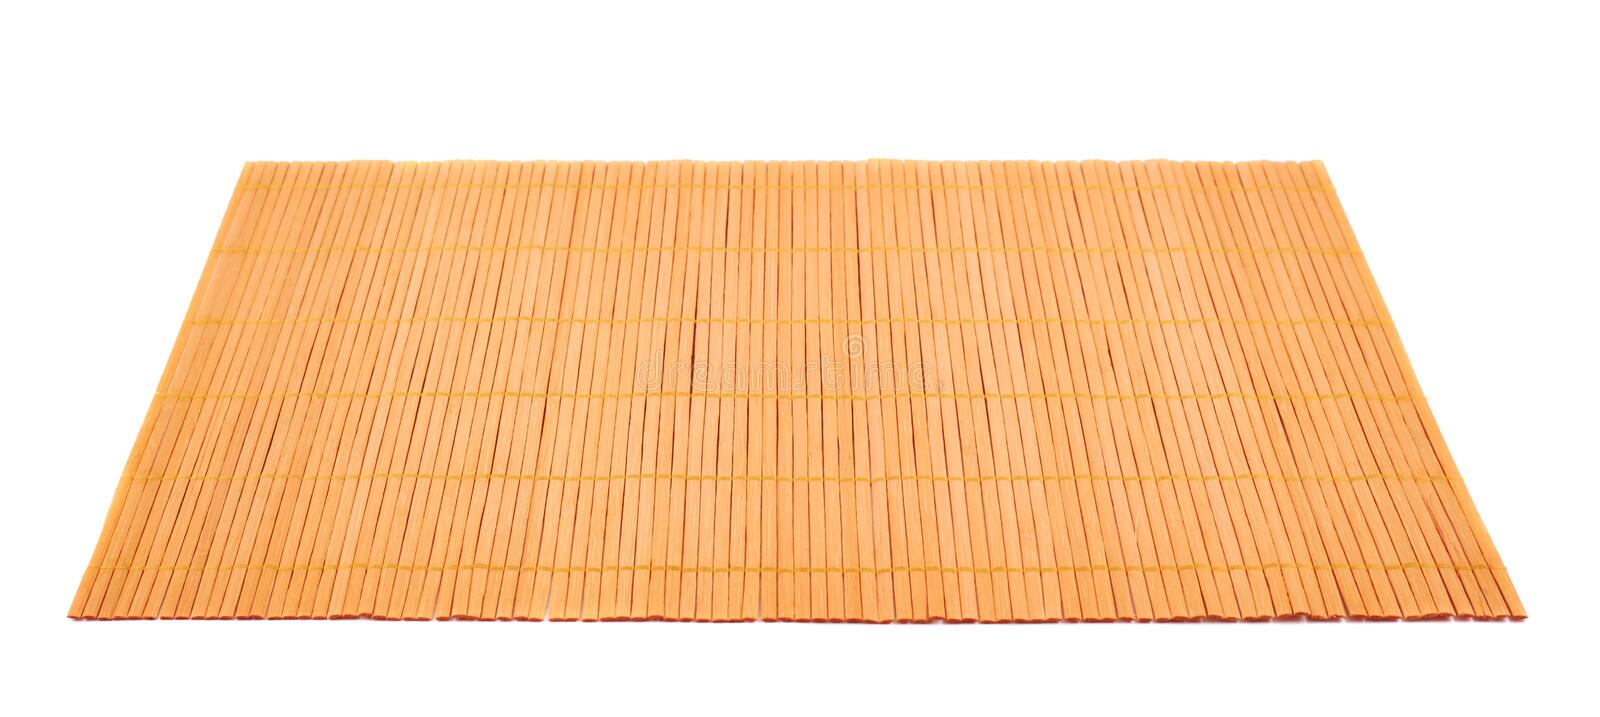 Bamboo straw serving mat isolated. Bamboo brown straw serving mat isolated over white background royalty free stock photo